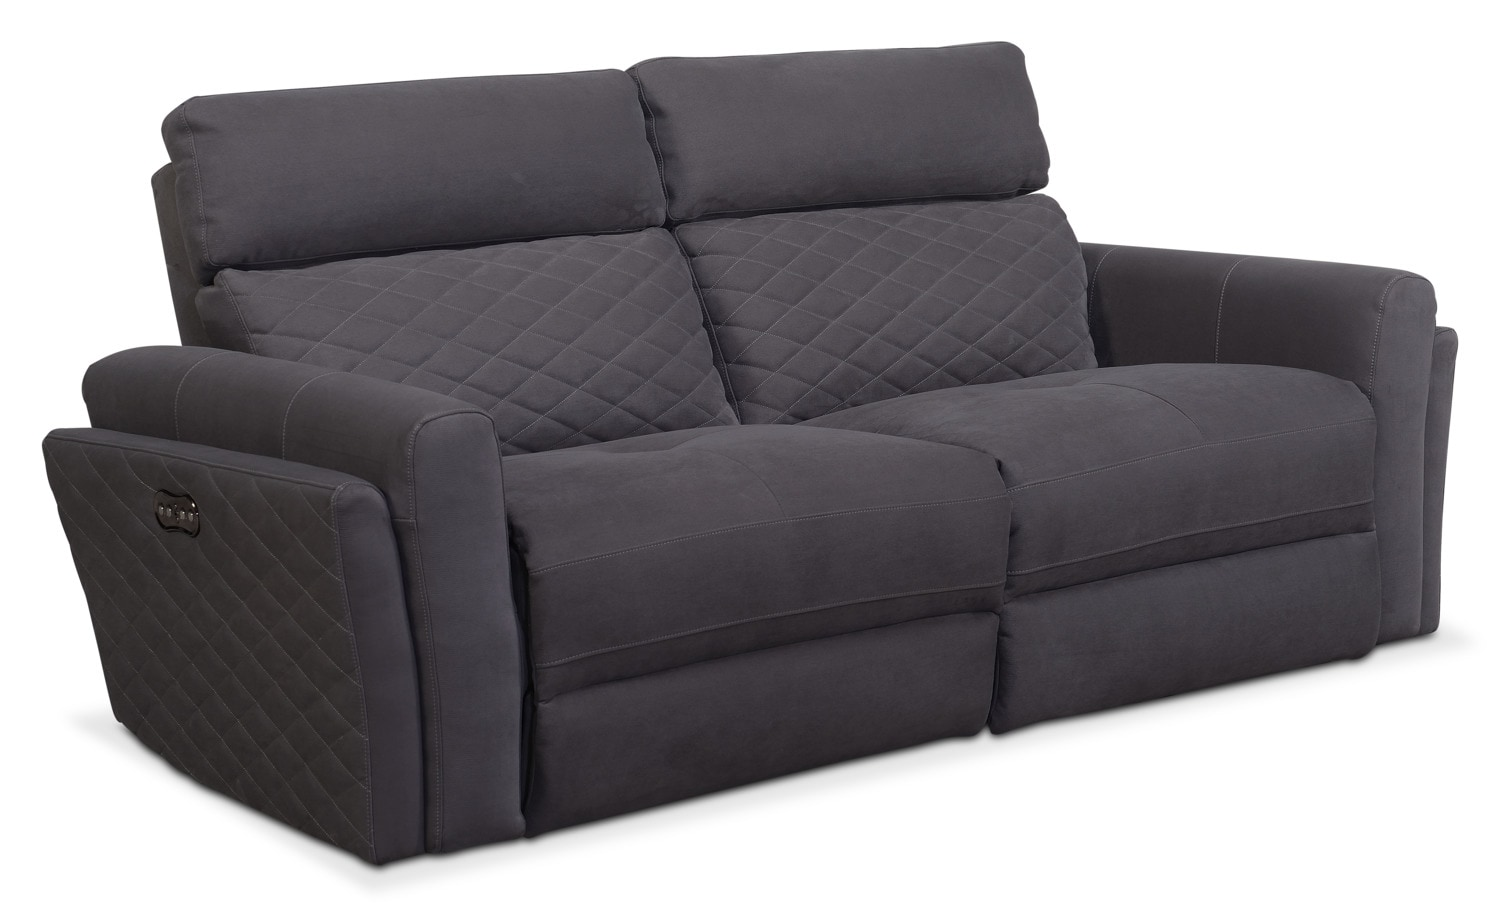 Living Room Furniture - Catalina 2-Piece Power Reclining Sofa - Gray